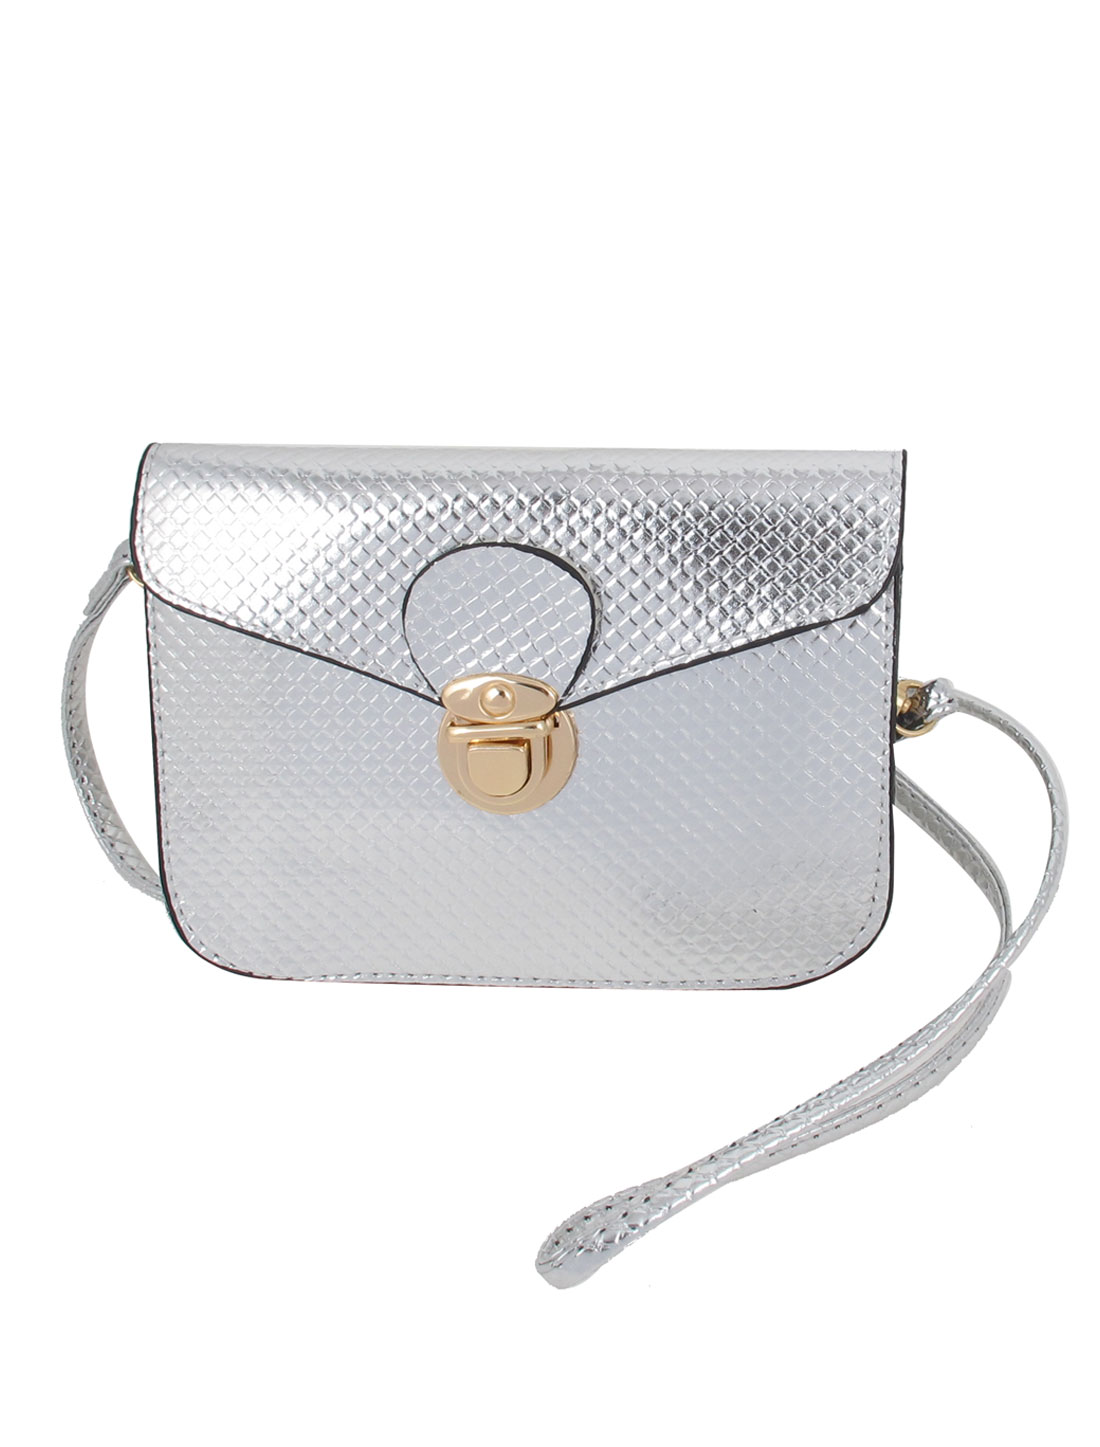 Ladies Silver Tone Faux Leather Push Lock Closure Woven Pattern Crossbody Bag